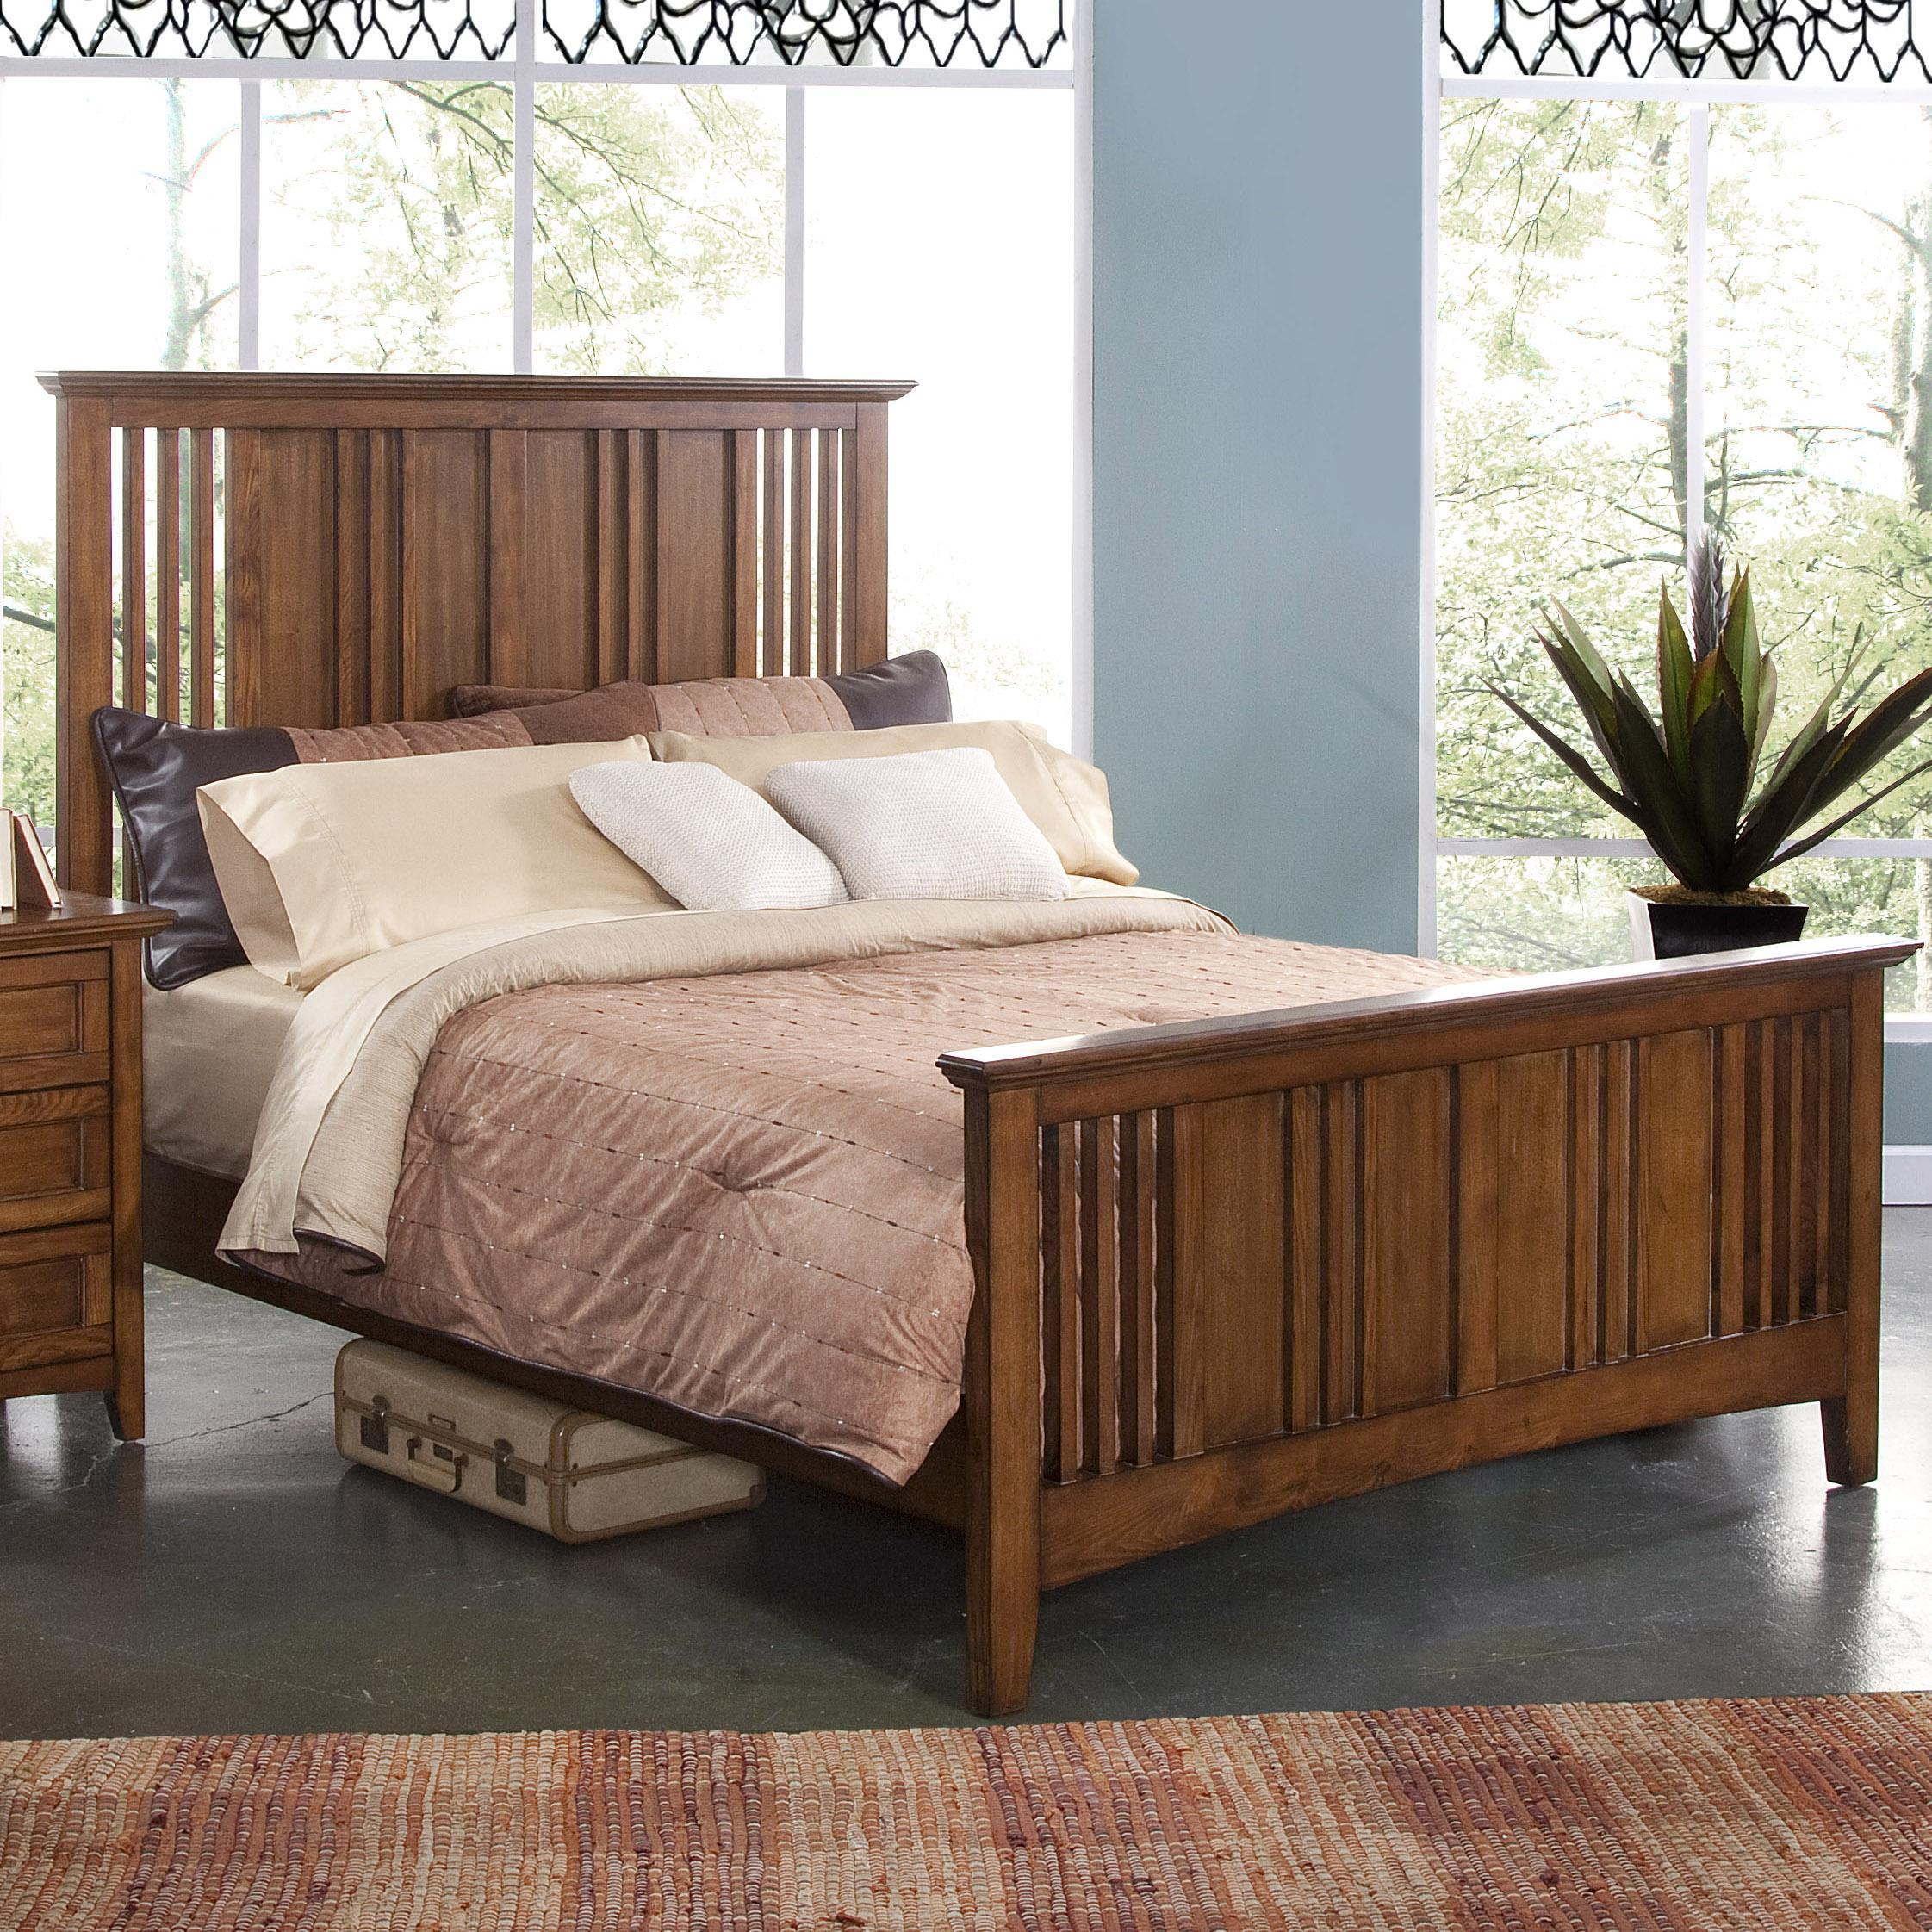 new classic logan full size panel bed with slatted headboard and footboard del sol furniture. Black Bedroom Furniture Sets. Home Design Ideas